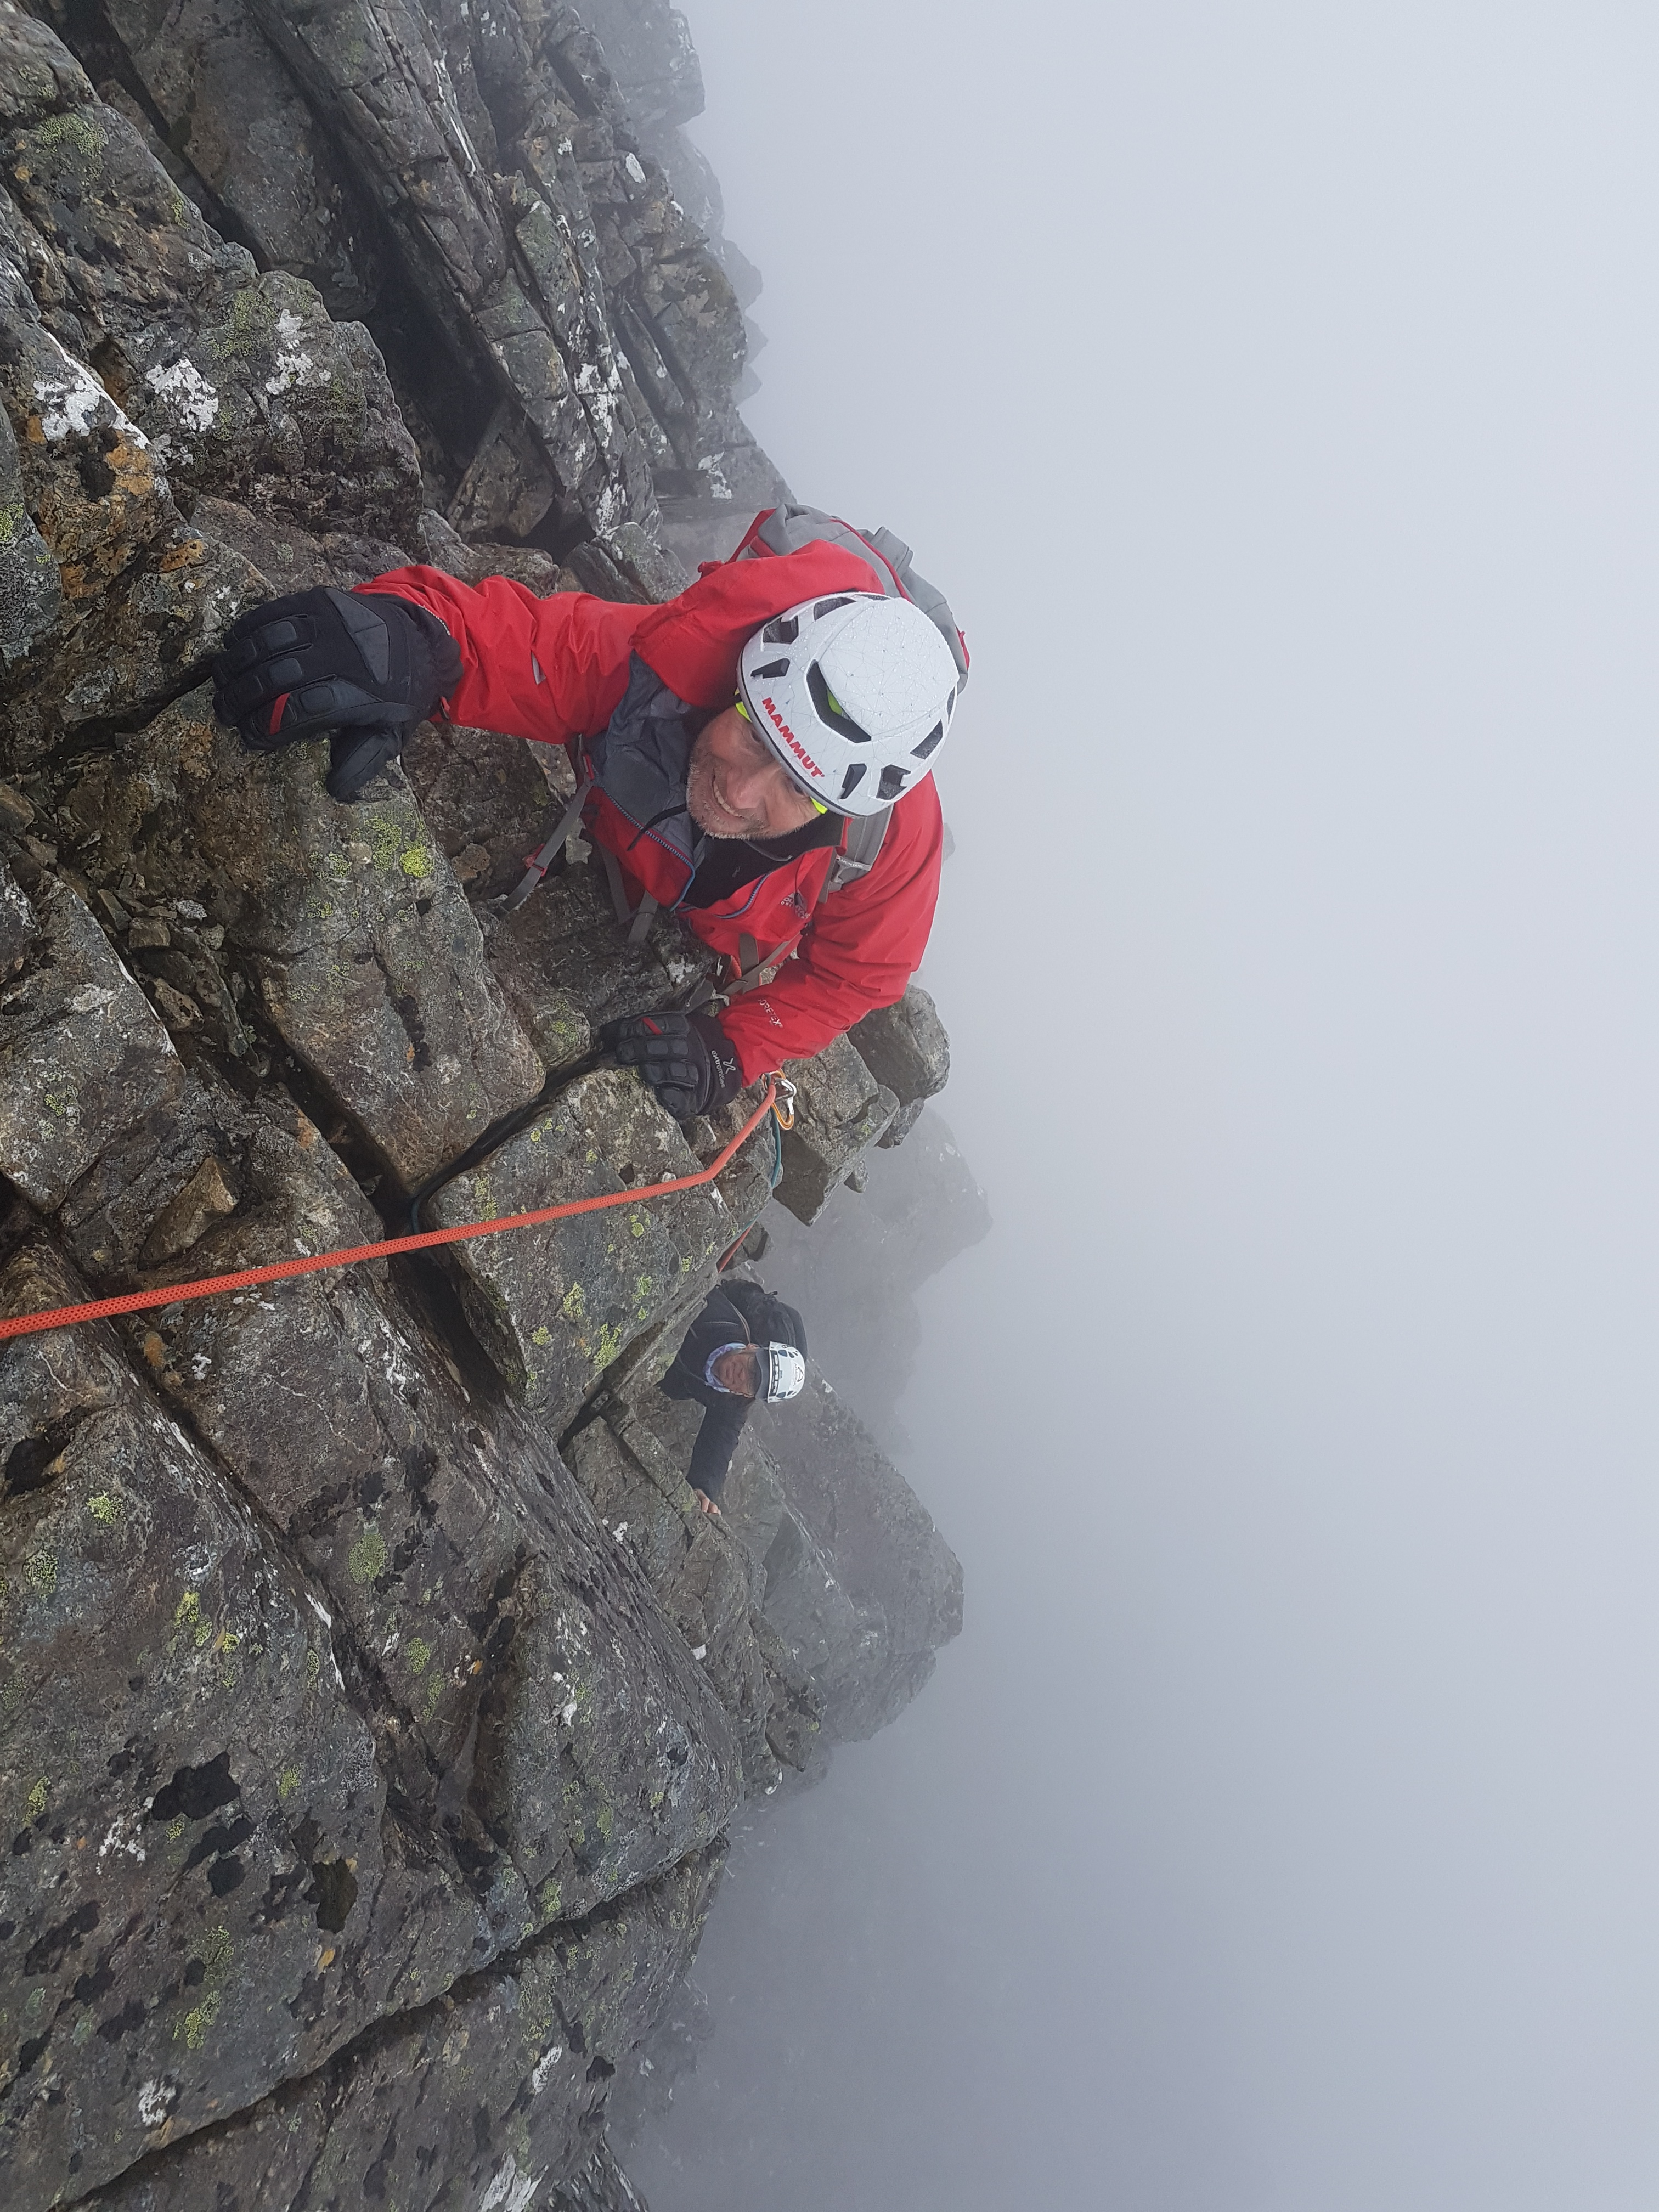 Hire a Castle Ridge Guide from Lochaber Guides fora guided ascent of Castle Ridge, Ben Nevis. This Great Ridge offers a brilliant day's climbing.